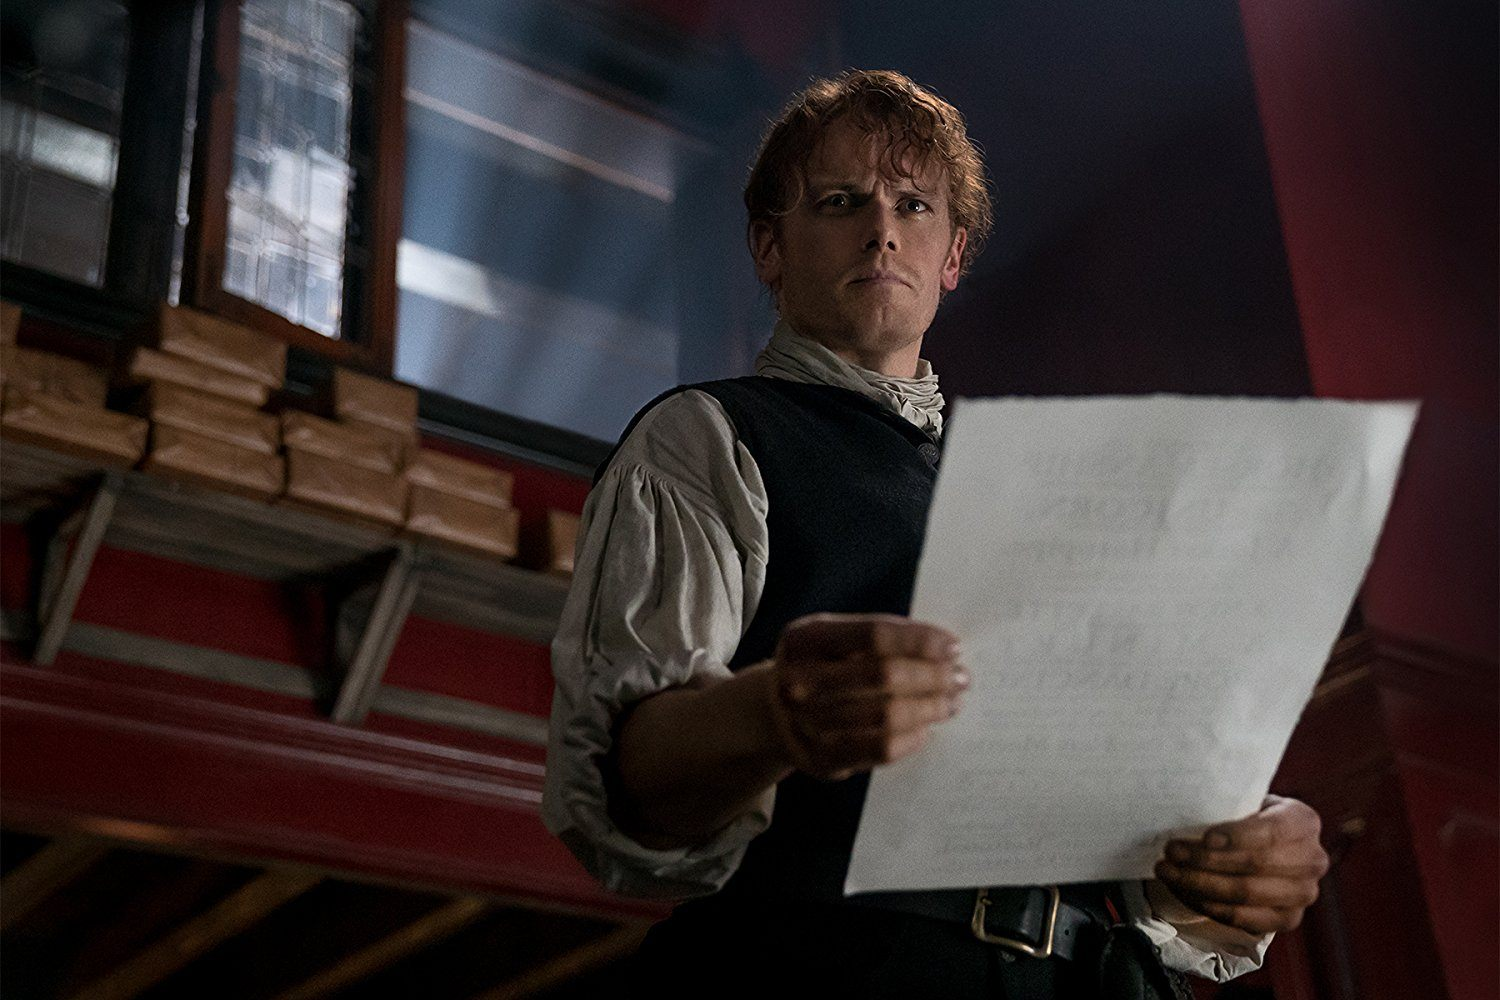 Jamie holding a piece of paper in Outlander